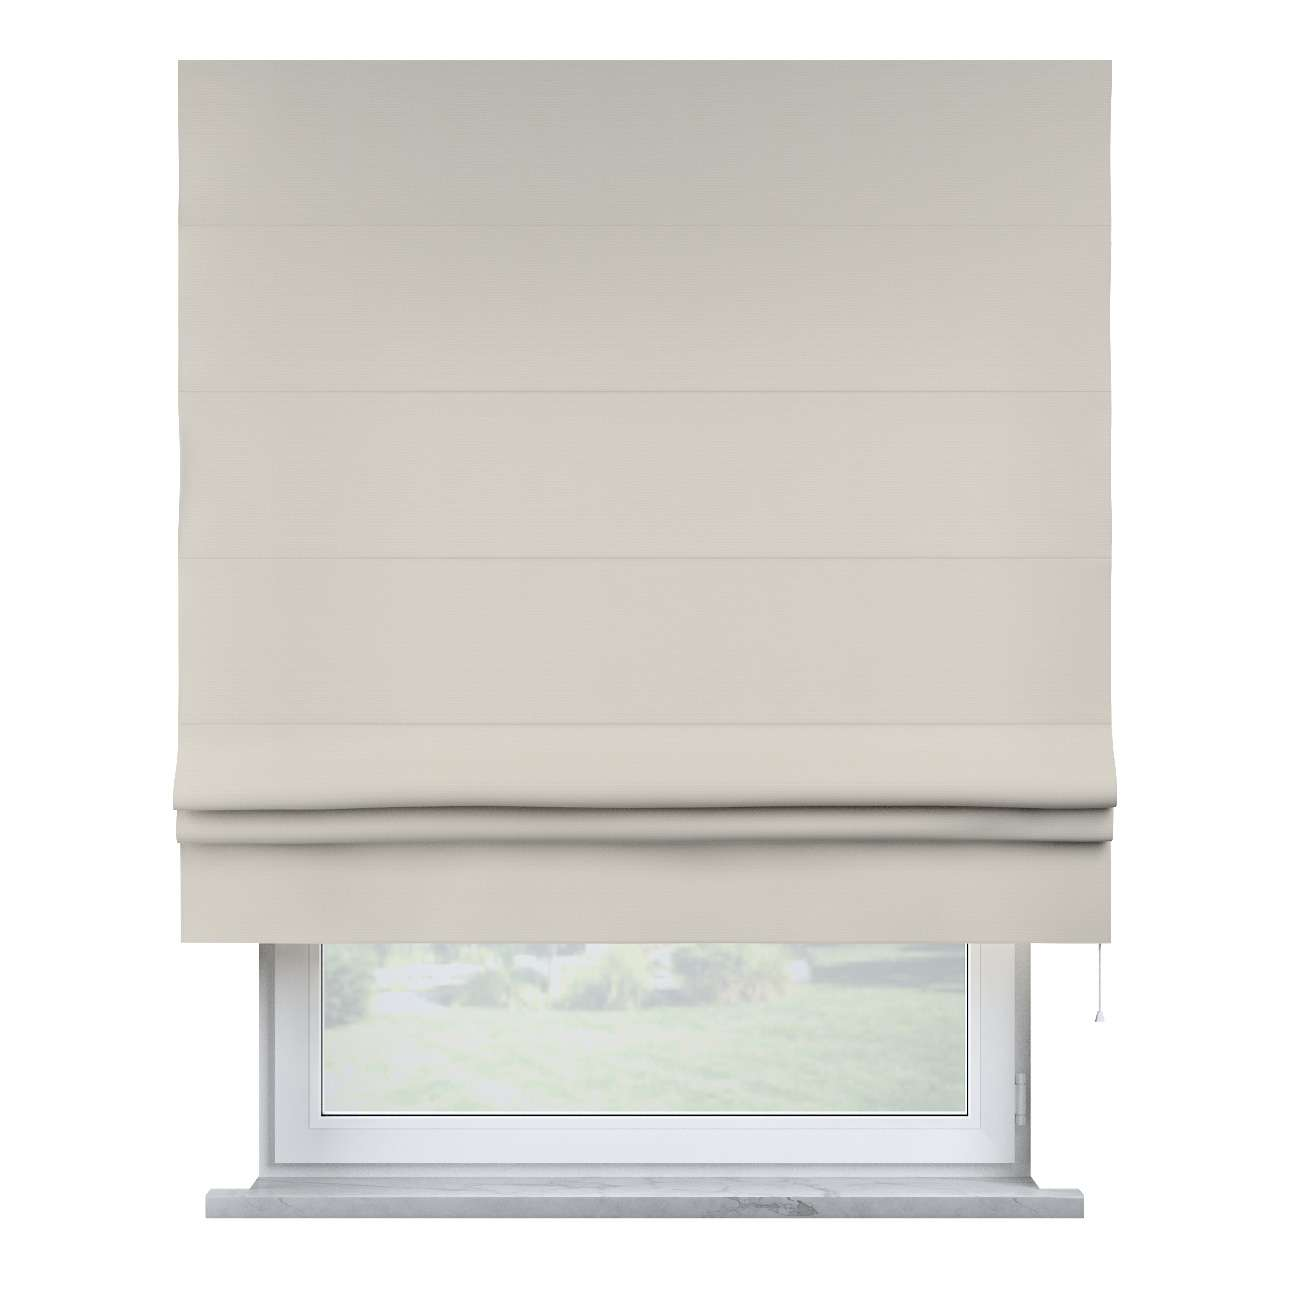 Sammy roman blind in collection Cotton Story, fabric: 702-31